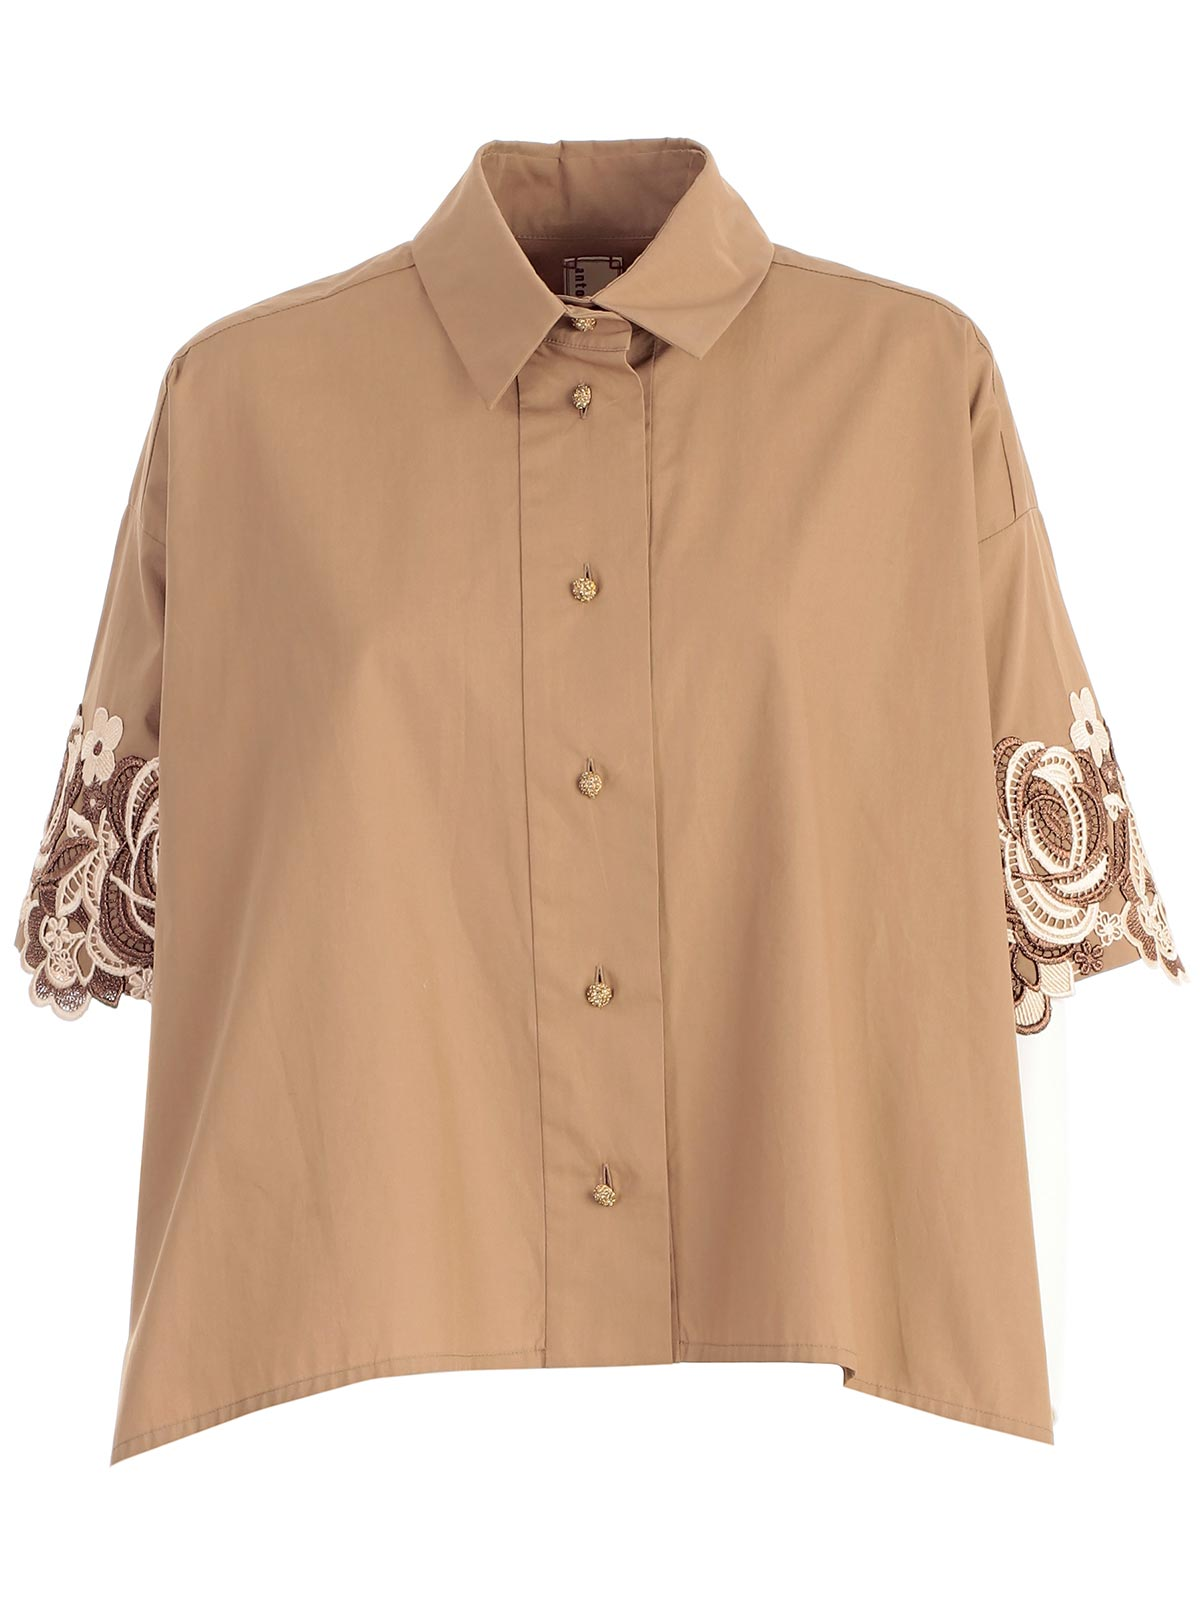 Picture of Antonio Marras Shirts